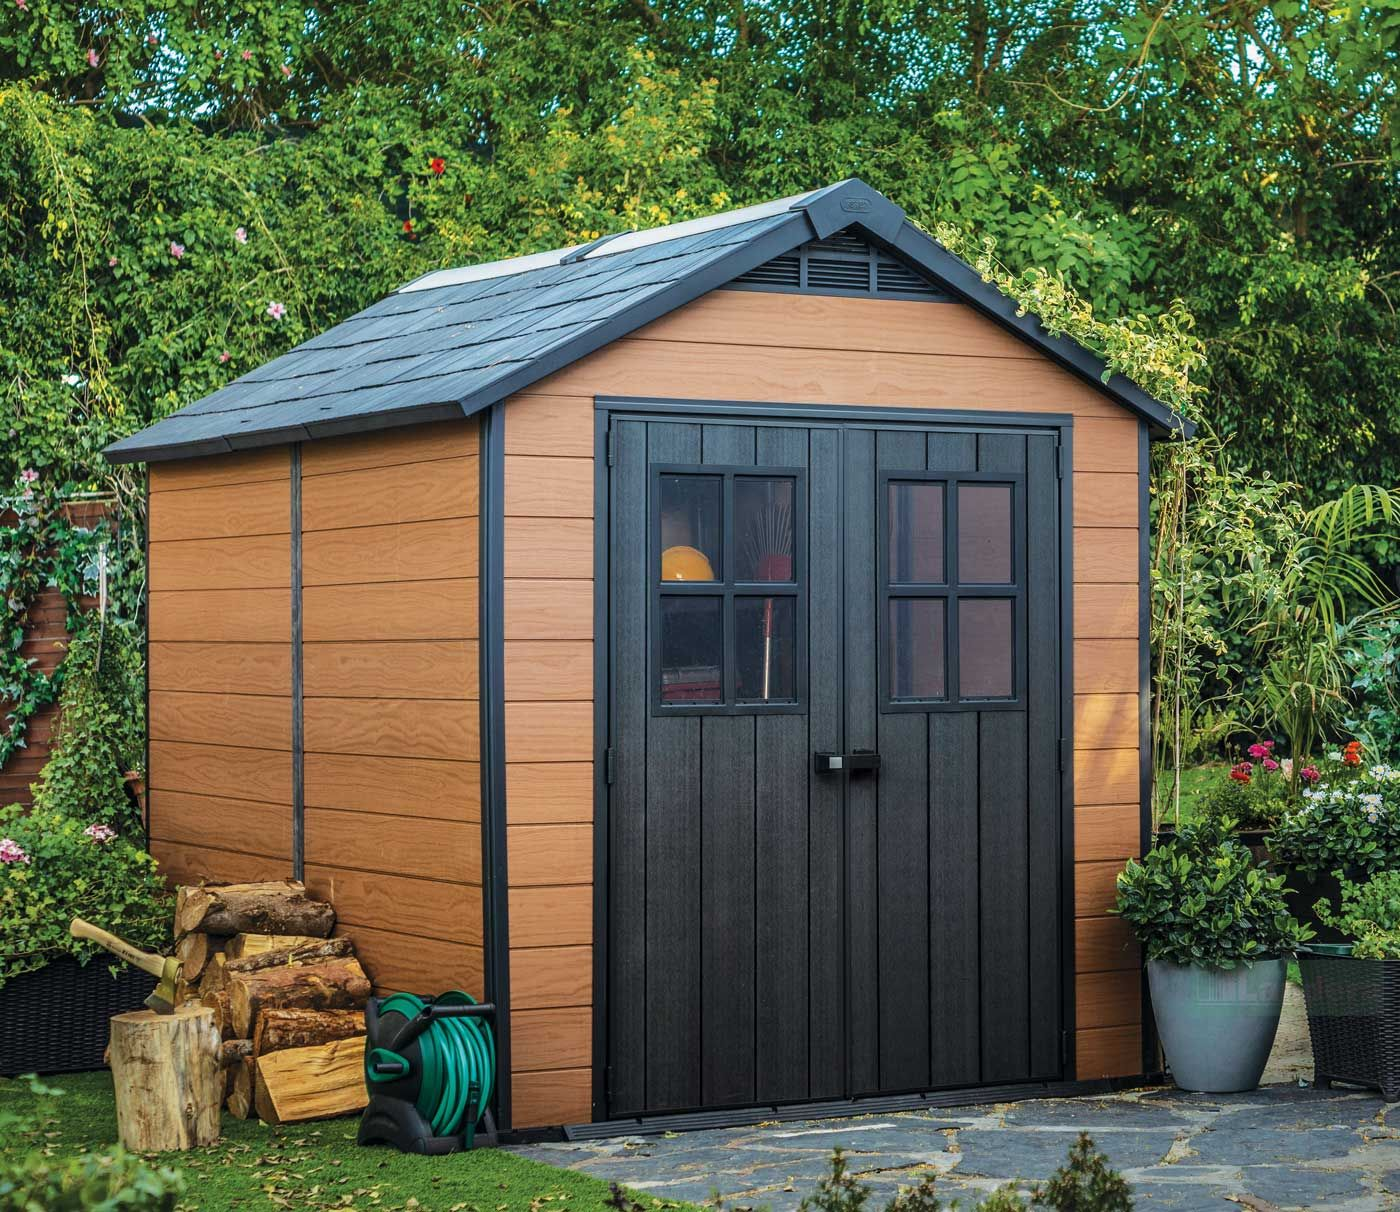 Keter Newton 759 Garden Shed 7 5 X9 2 3mx2 9m Discount Shed Outdoor Sheds Shed Design